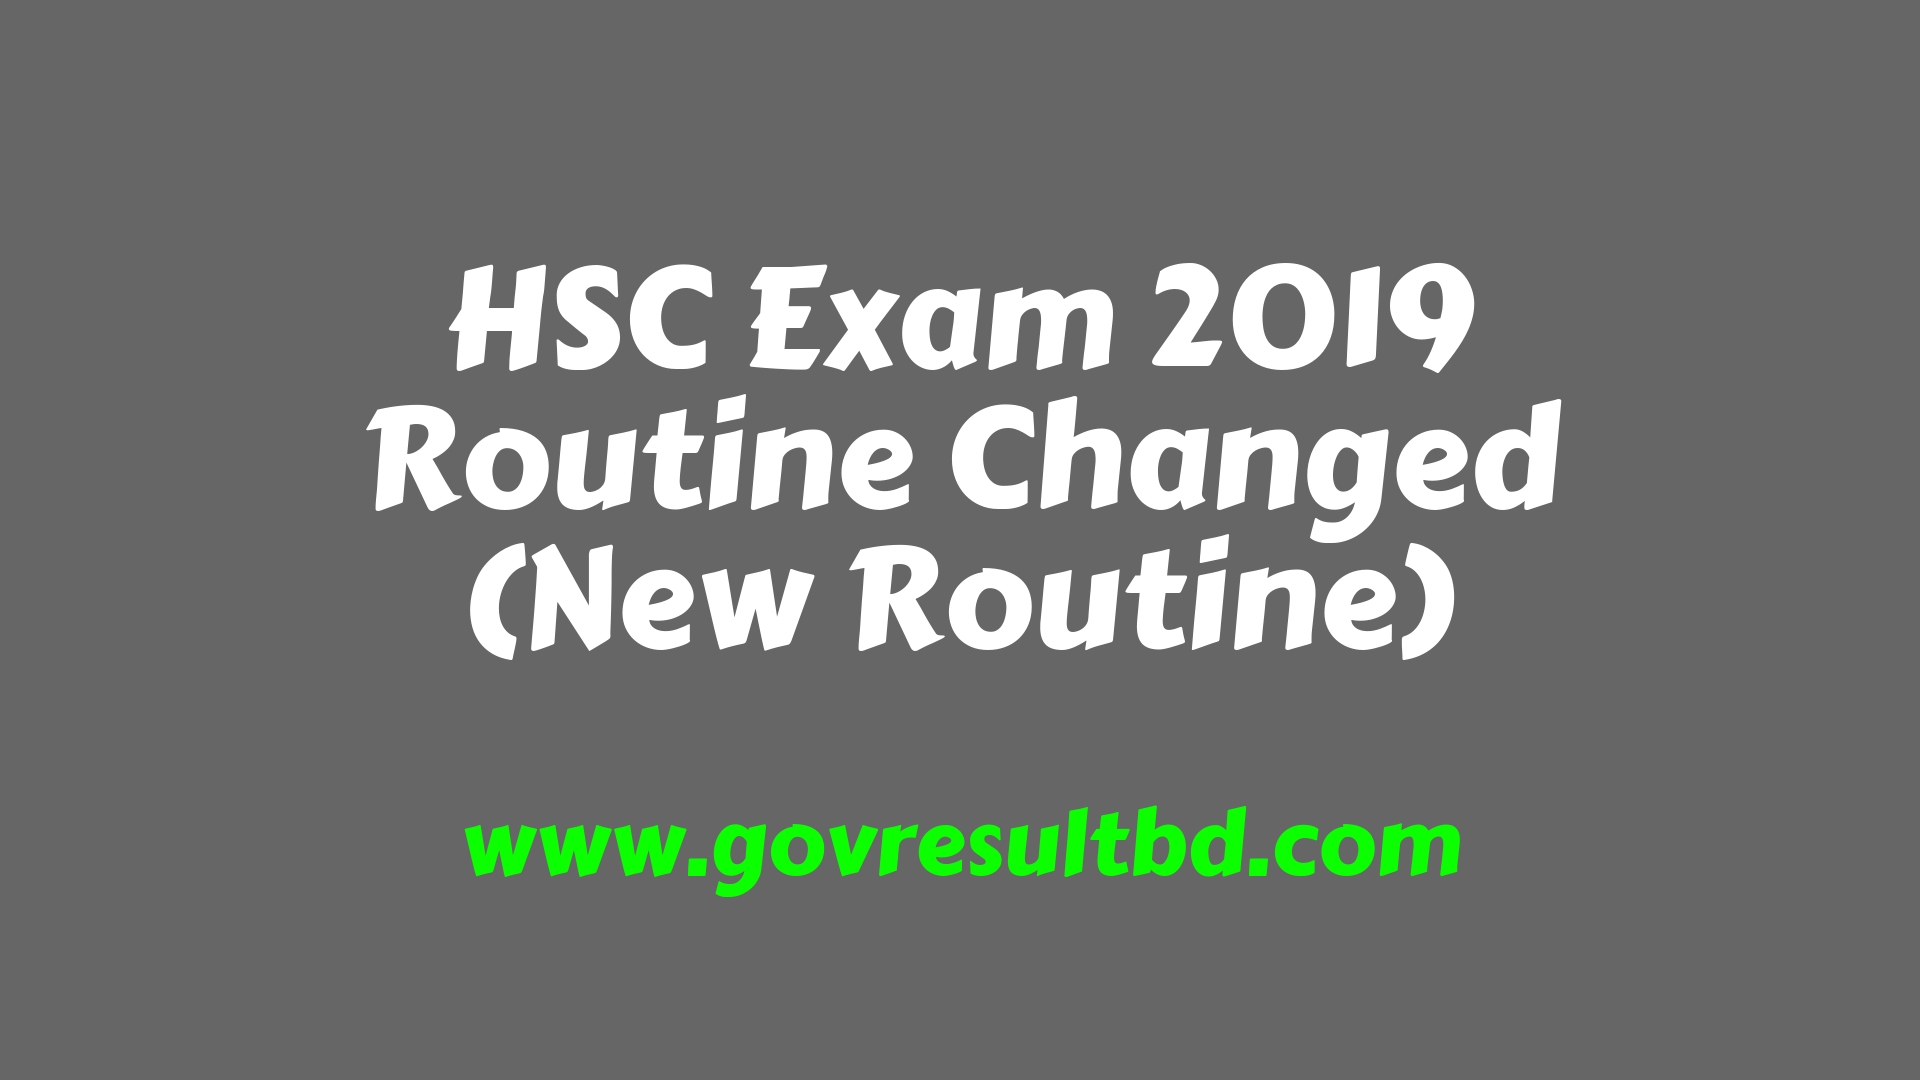 HSC Exam 2019 Routine Changed (New Routine)